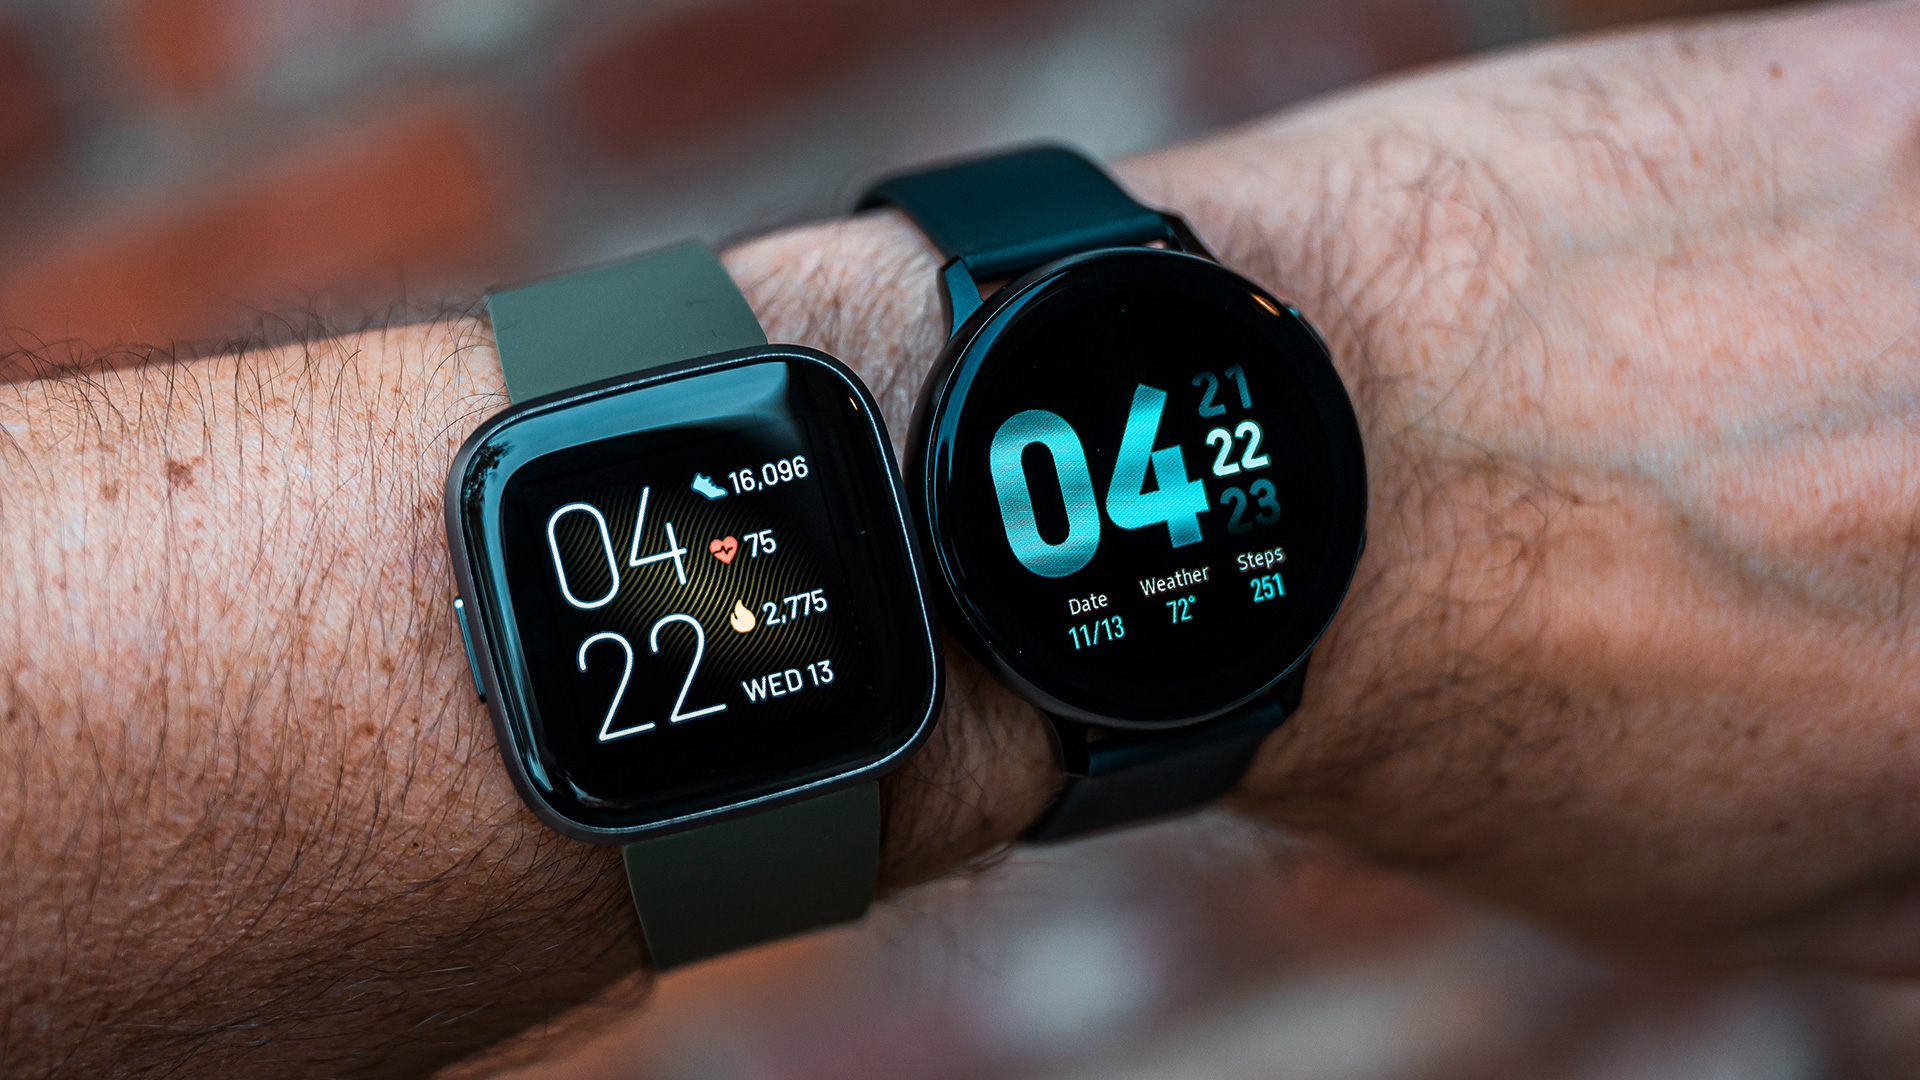 Galaxy Watch Active 2 Vs Fitbit Versa 2 Stateoftech